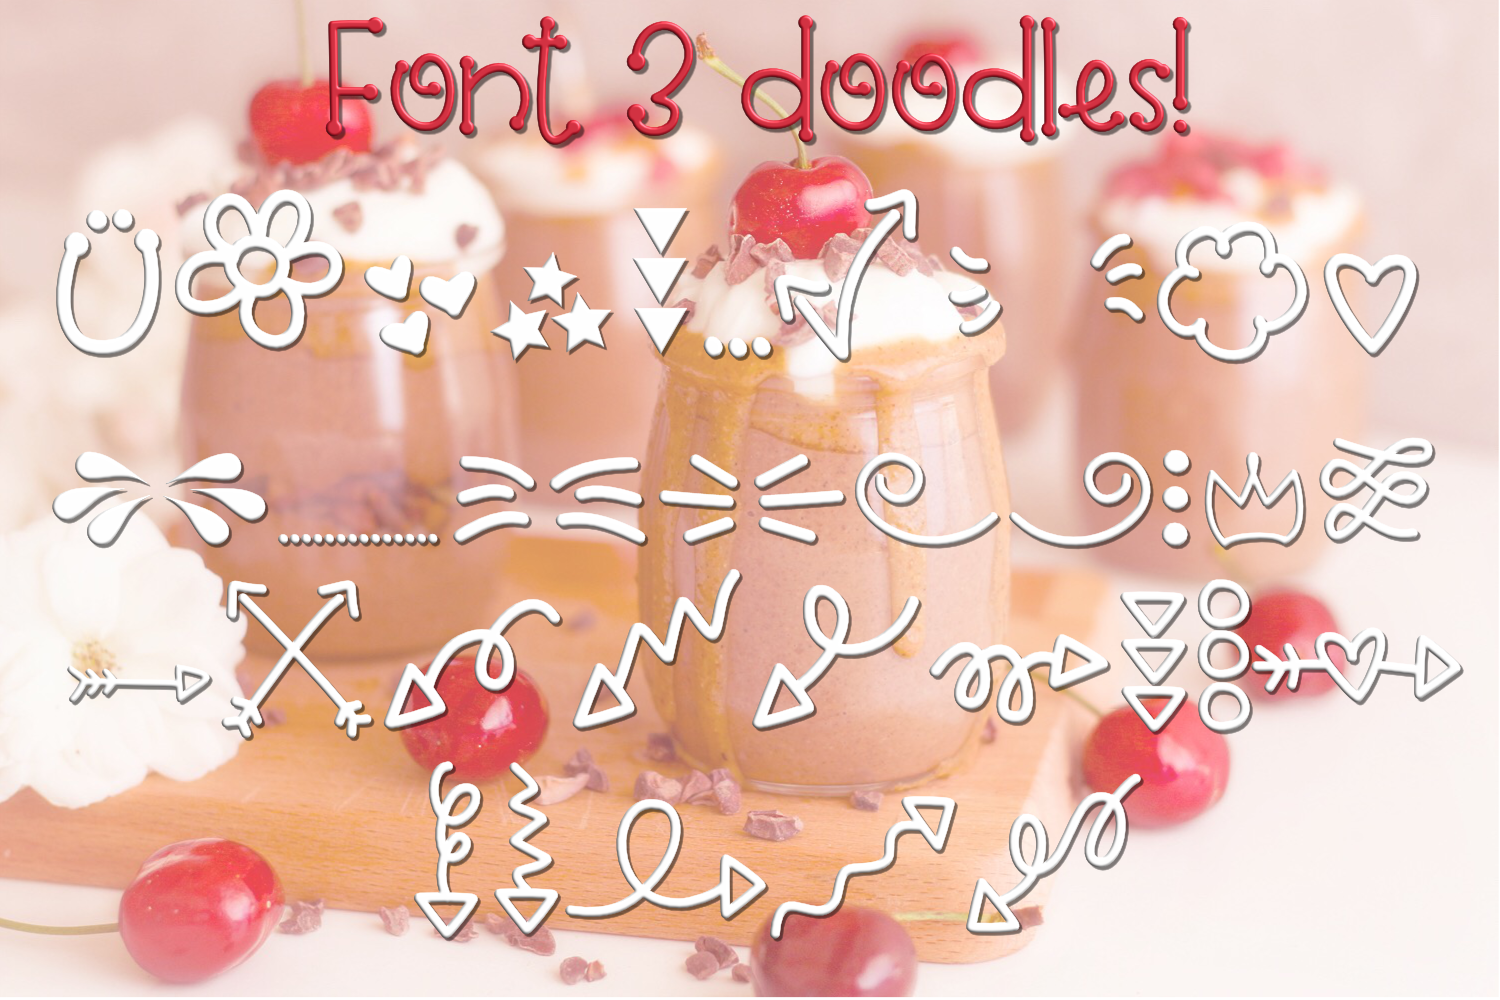 Cherry on Top - A Font Trio with Doodles example image 5